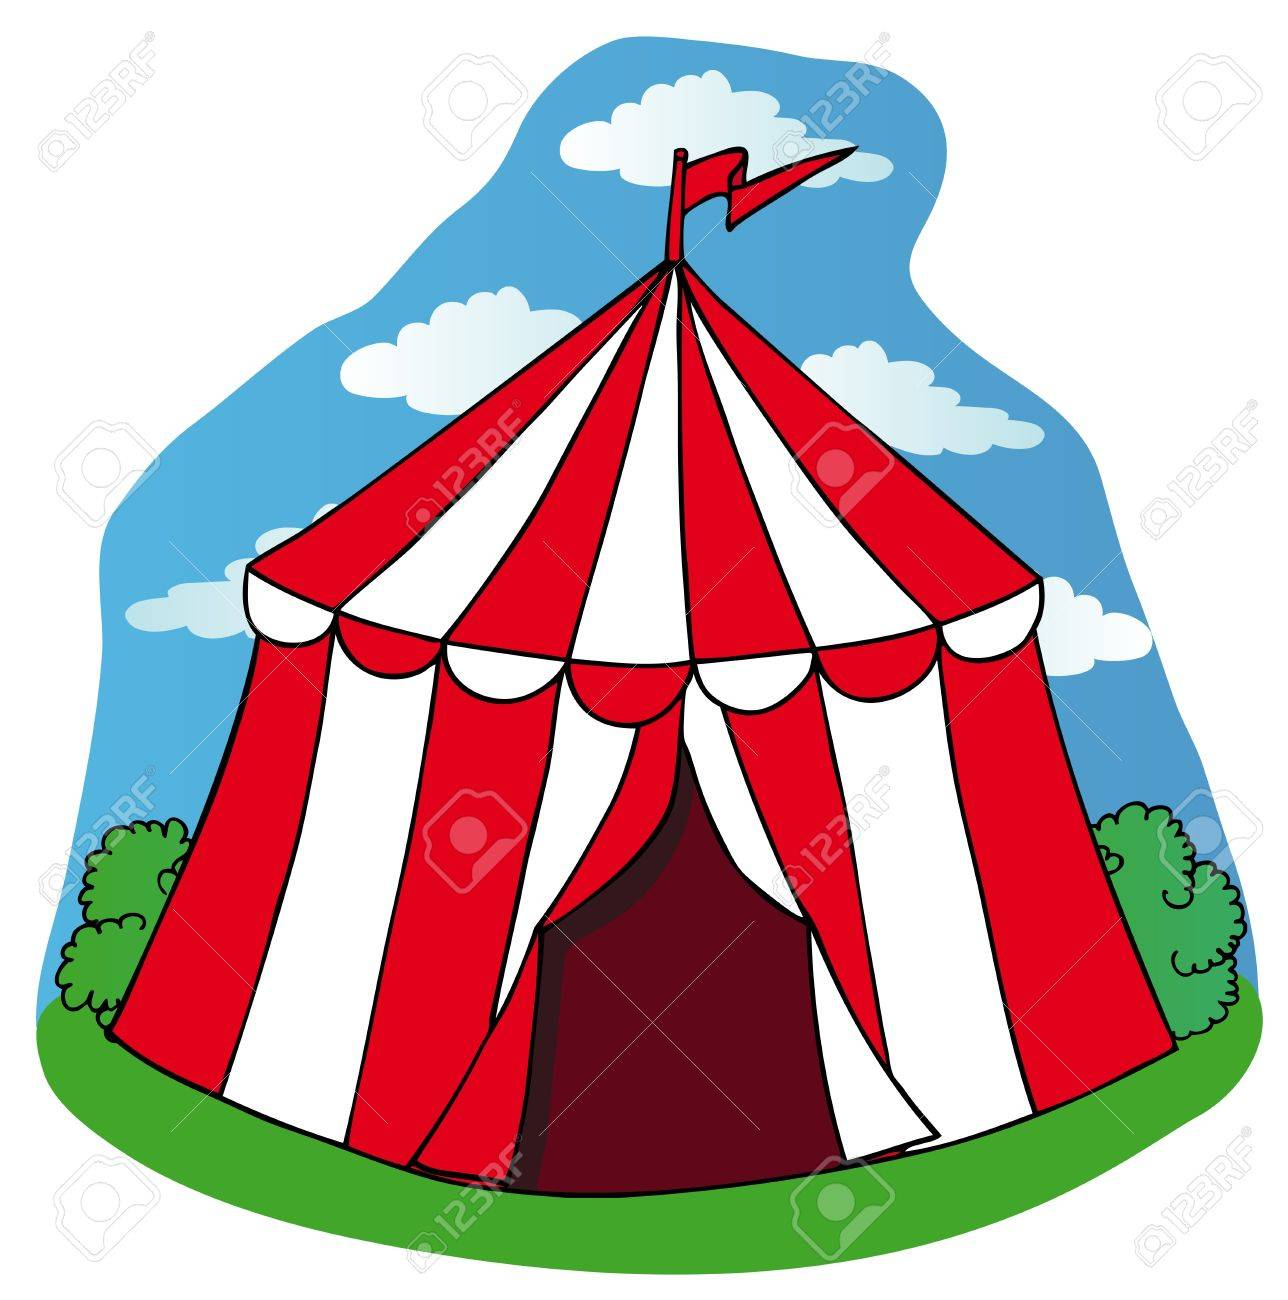 Little circus tent - vector illustration. Stock Vector - 16992693